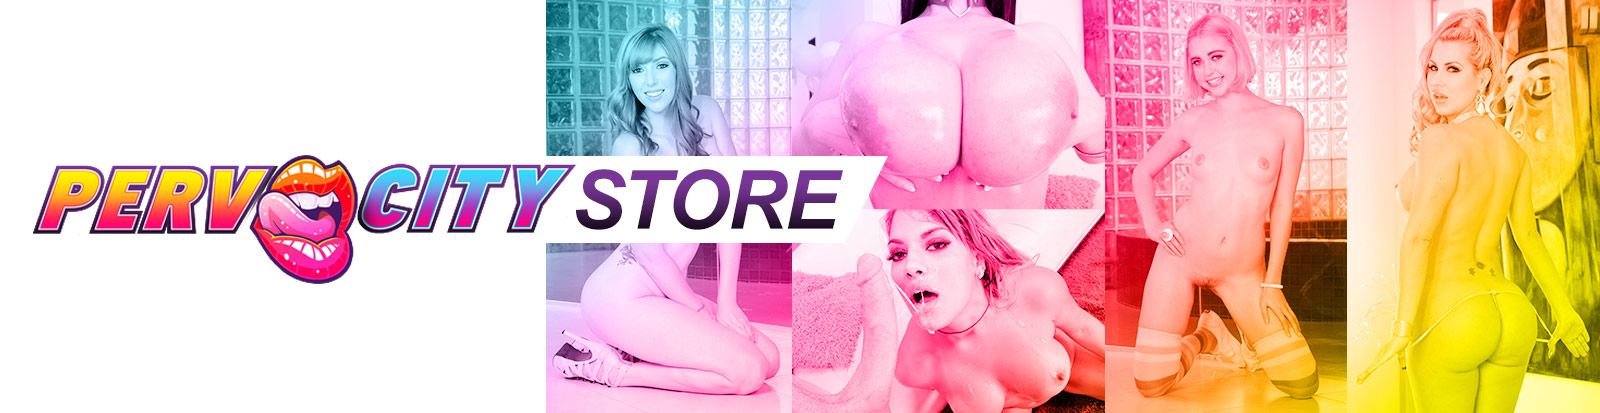 Welcome to the Perv City Store official on Demand theatre and store.